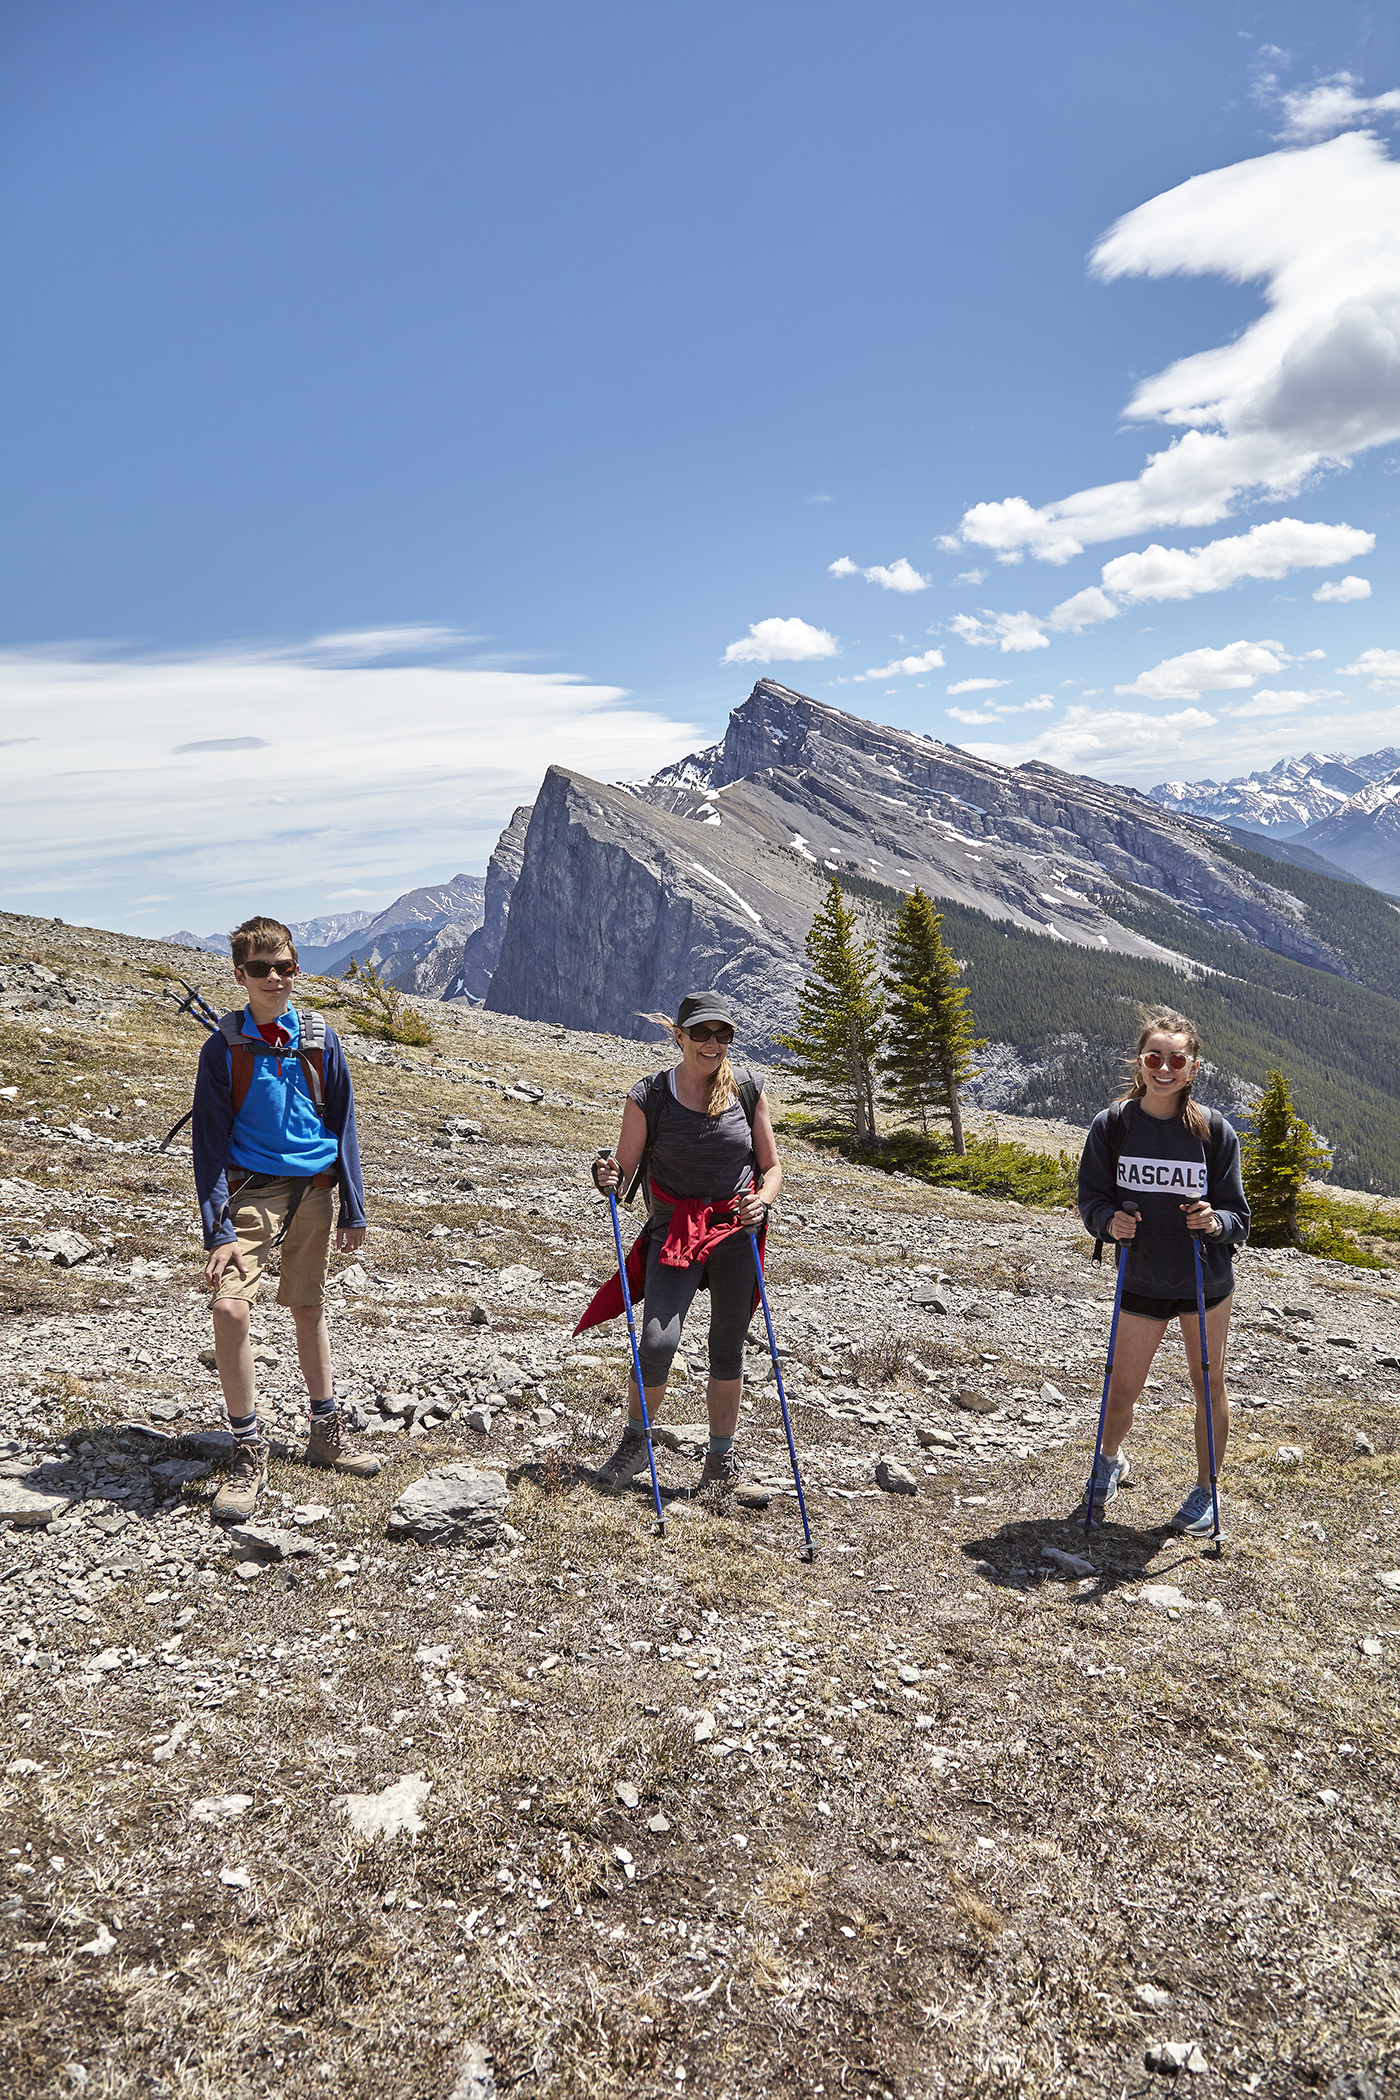 Yuri, Nadien and Katja on the ascent. The  Lawrence Grassi  Massif looms behind.